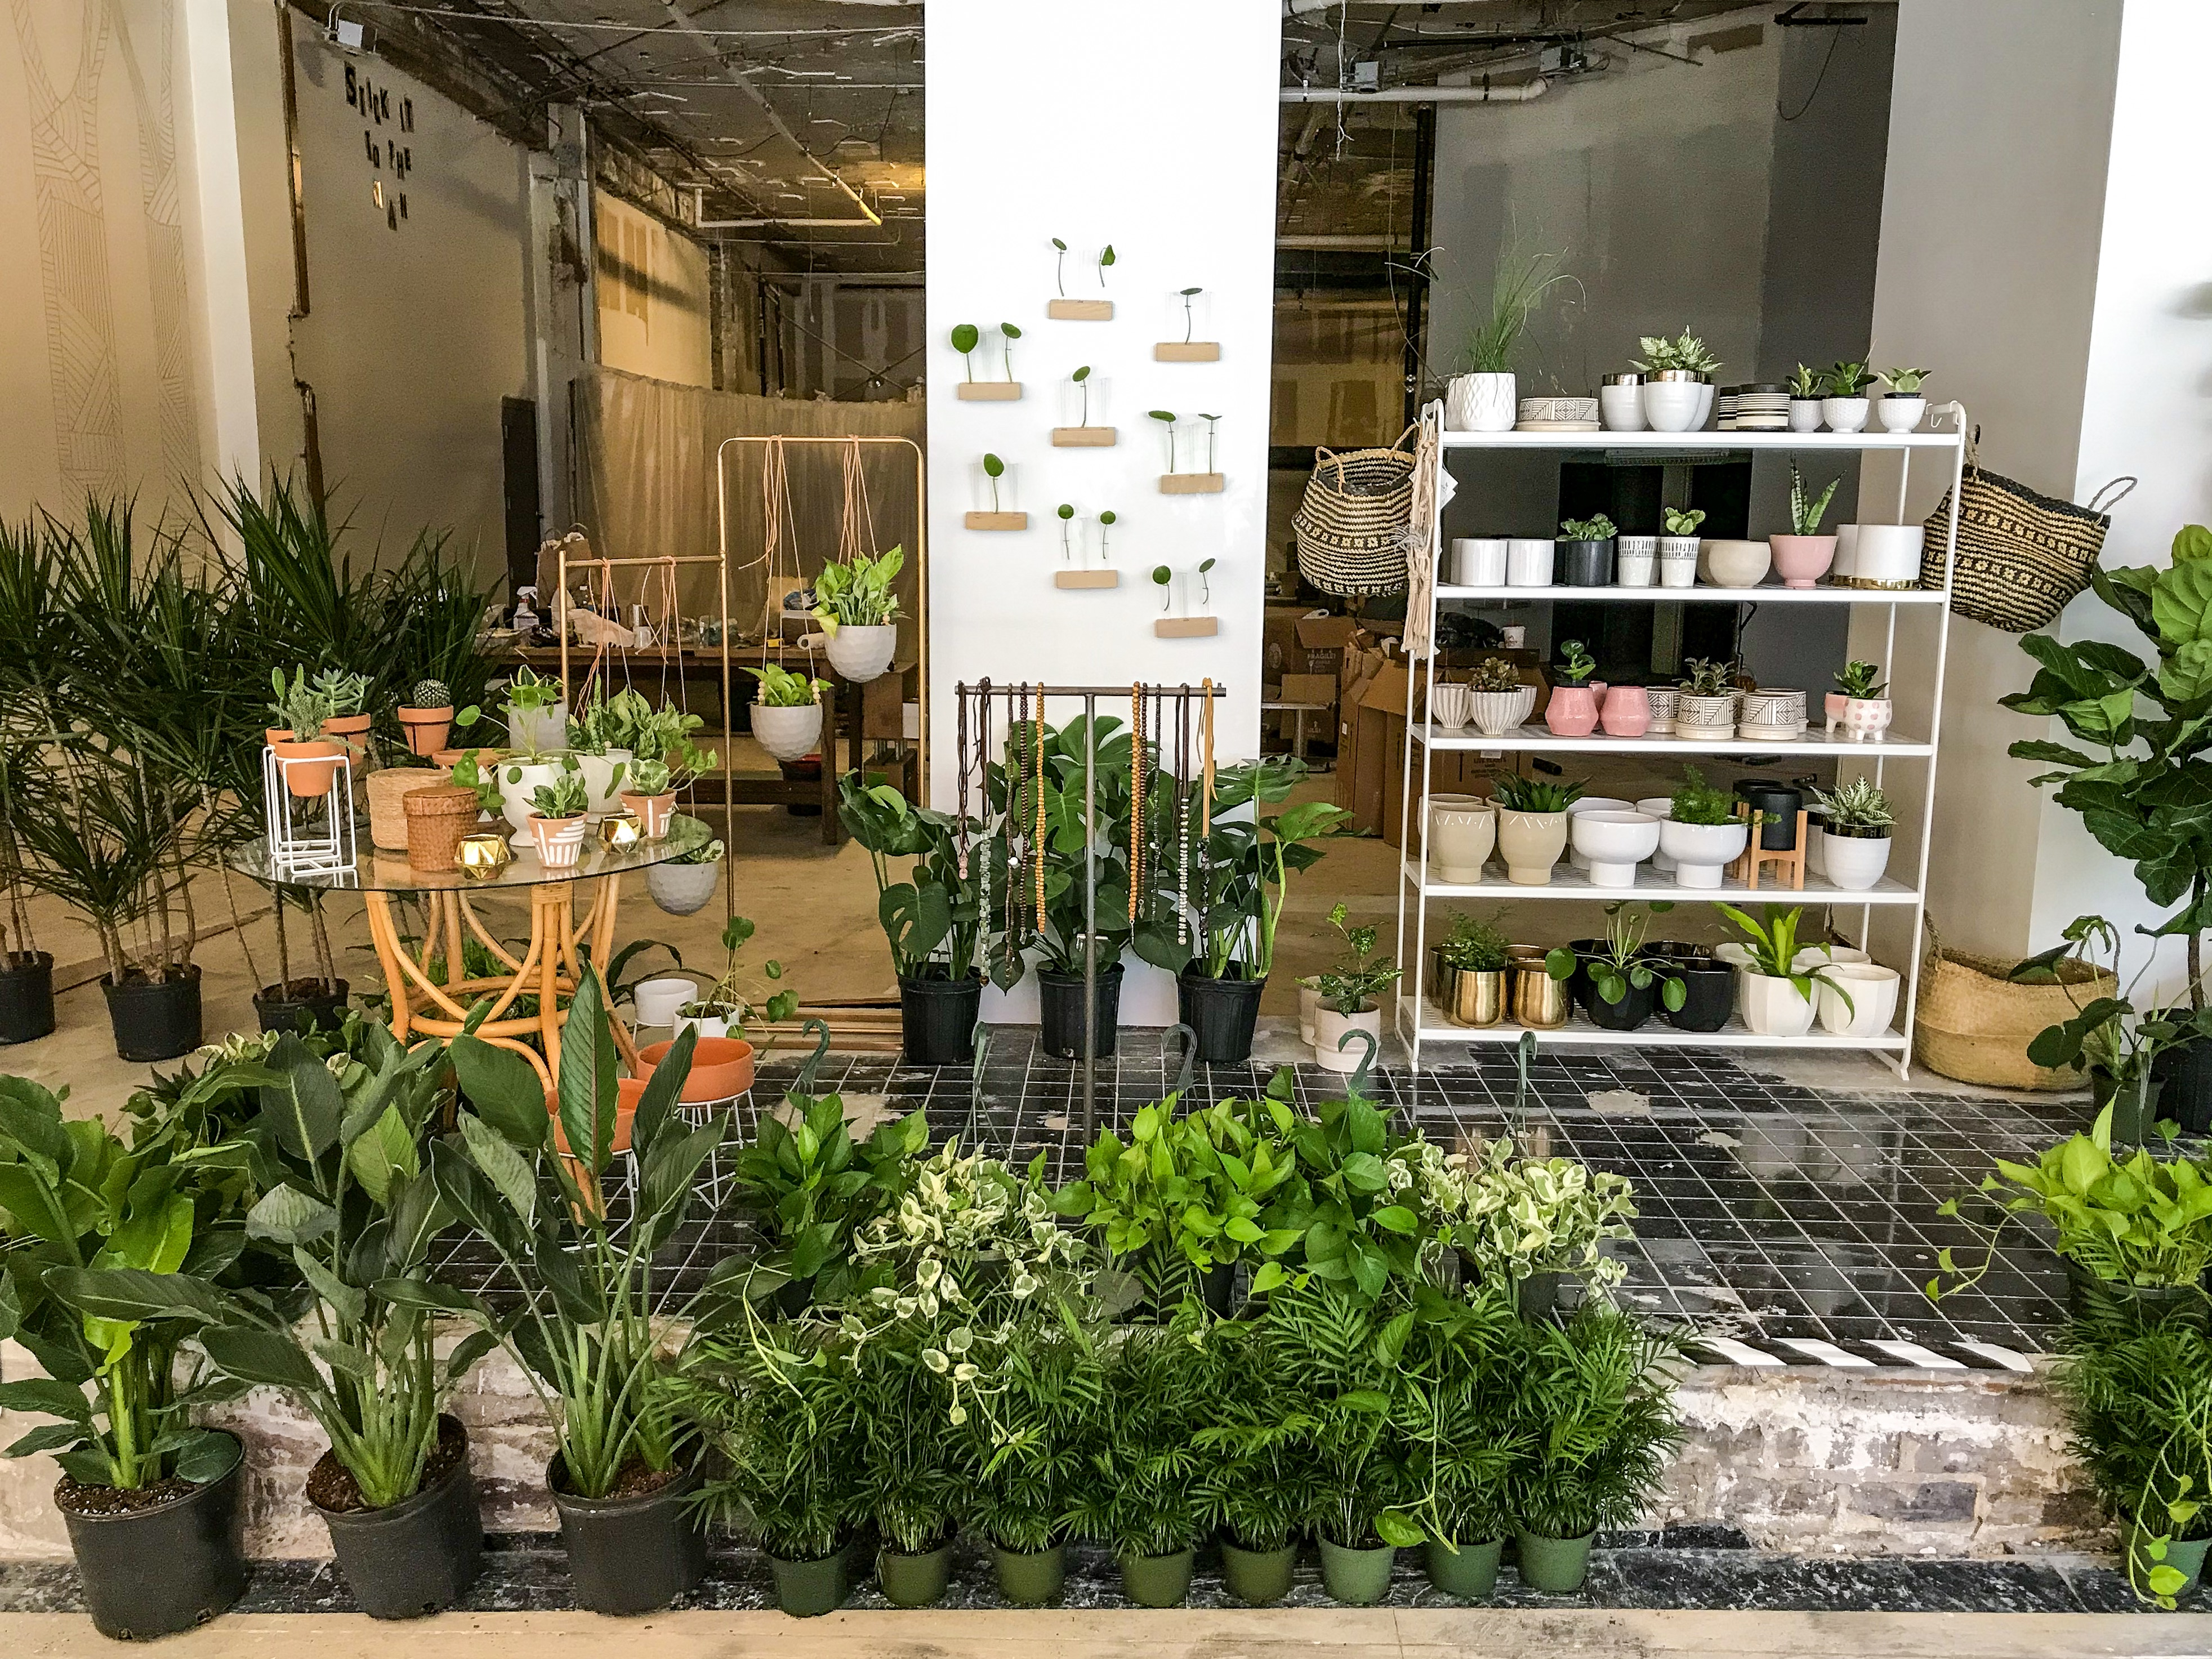 New downtown plant shop, lofts, and electric scooters